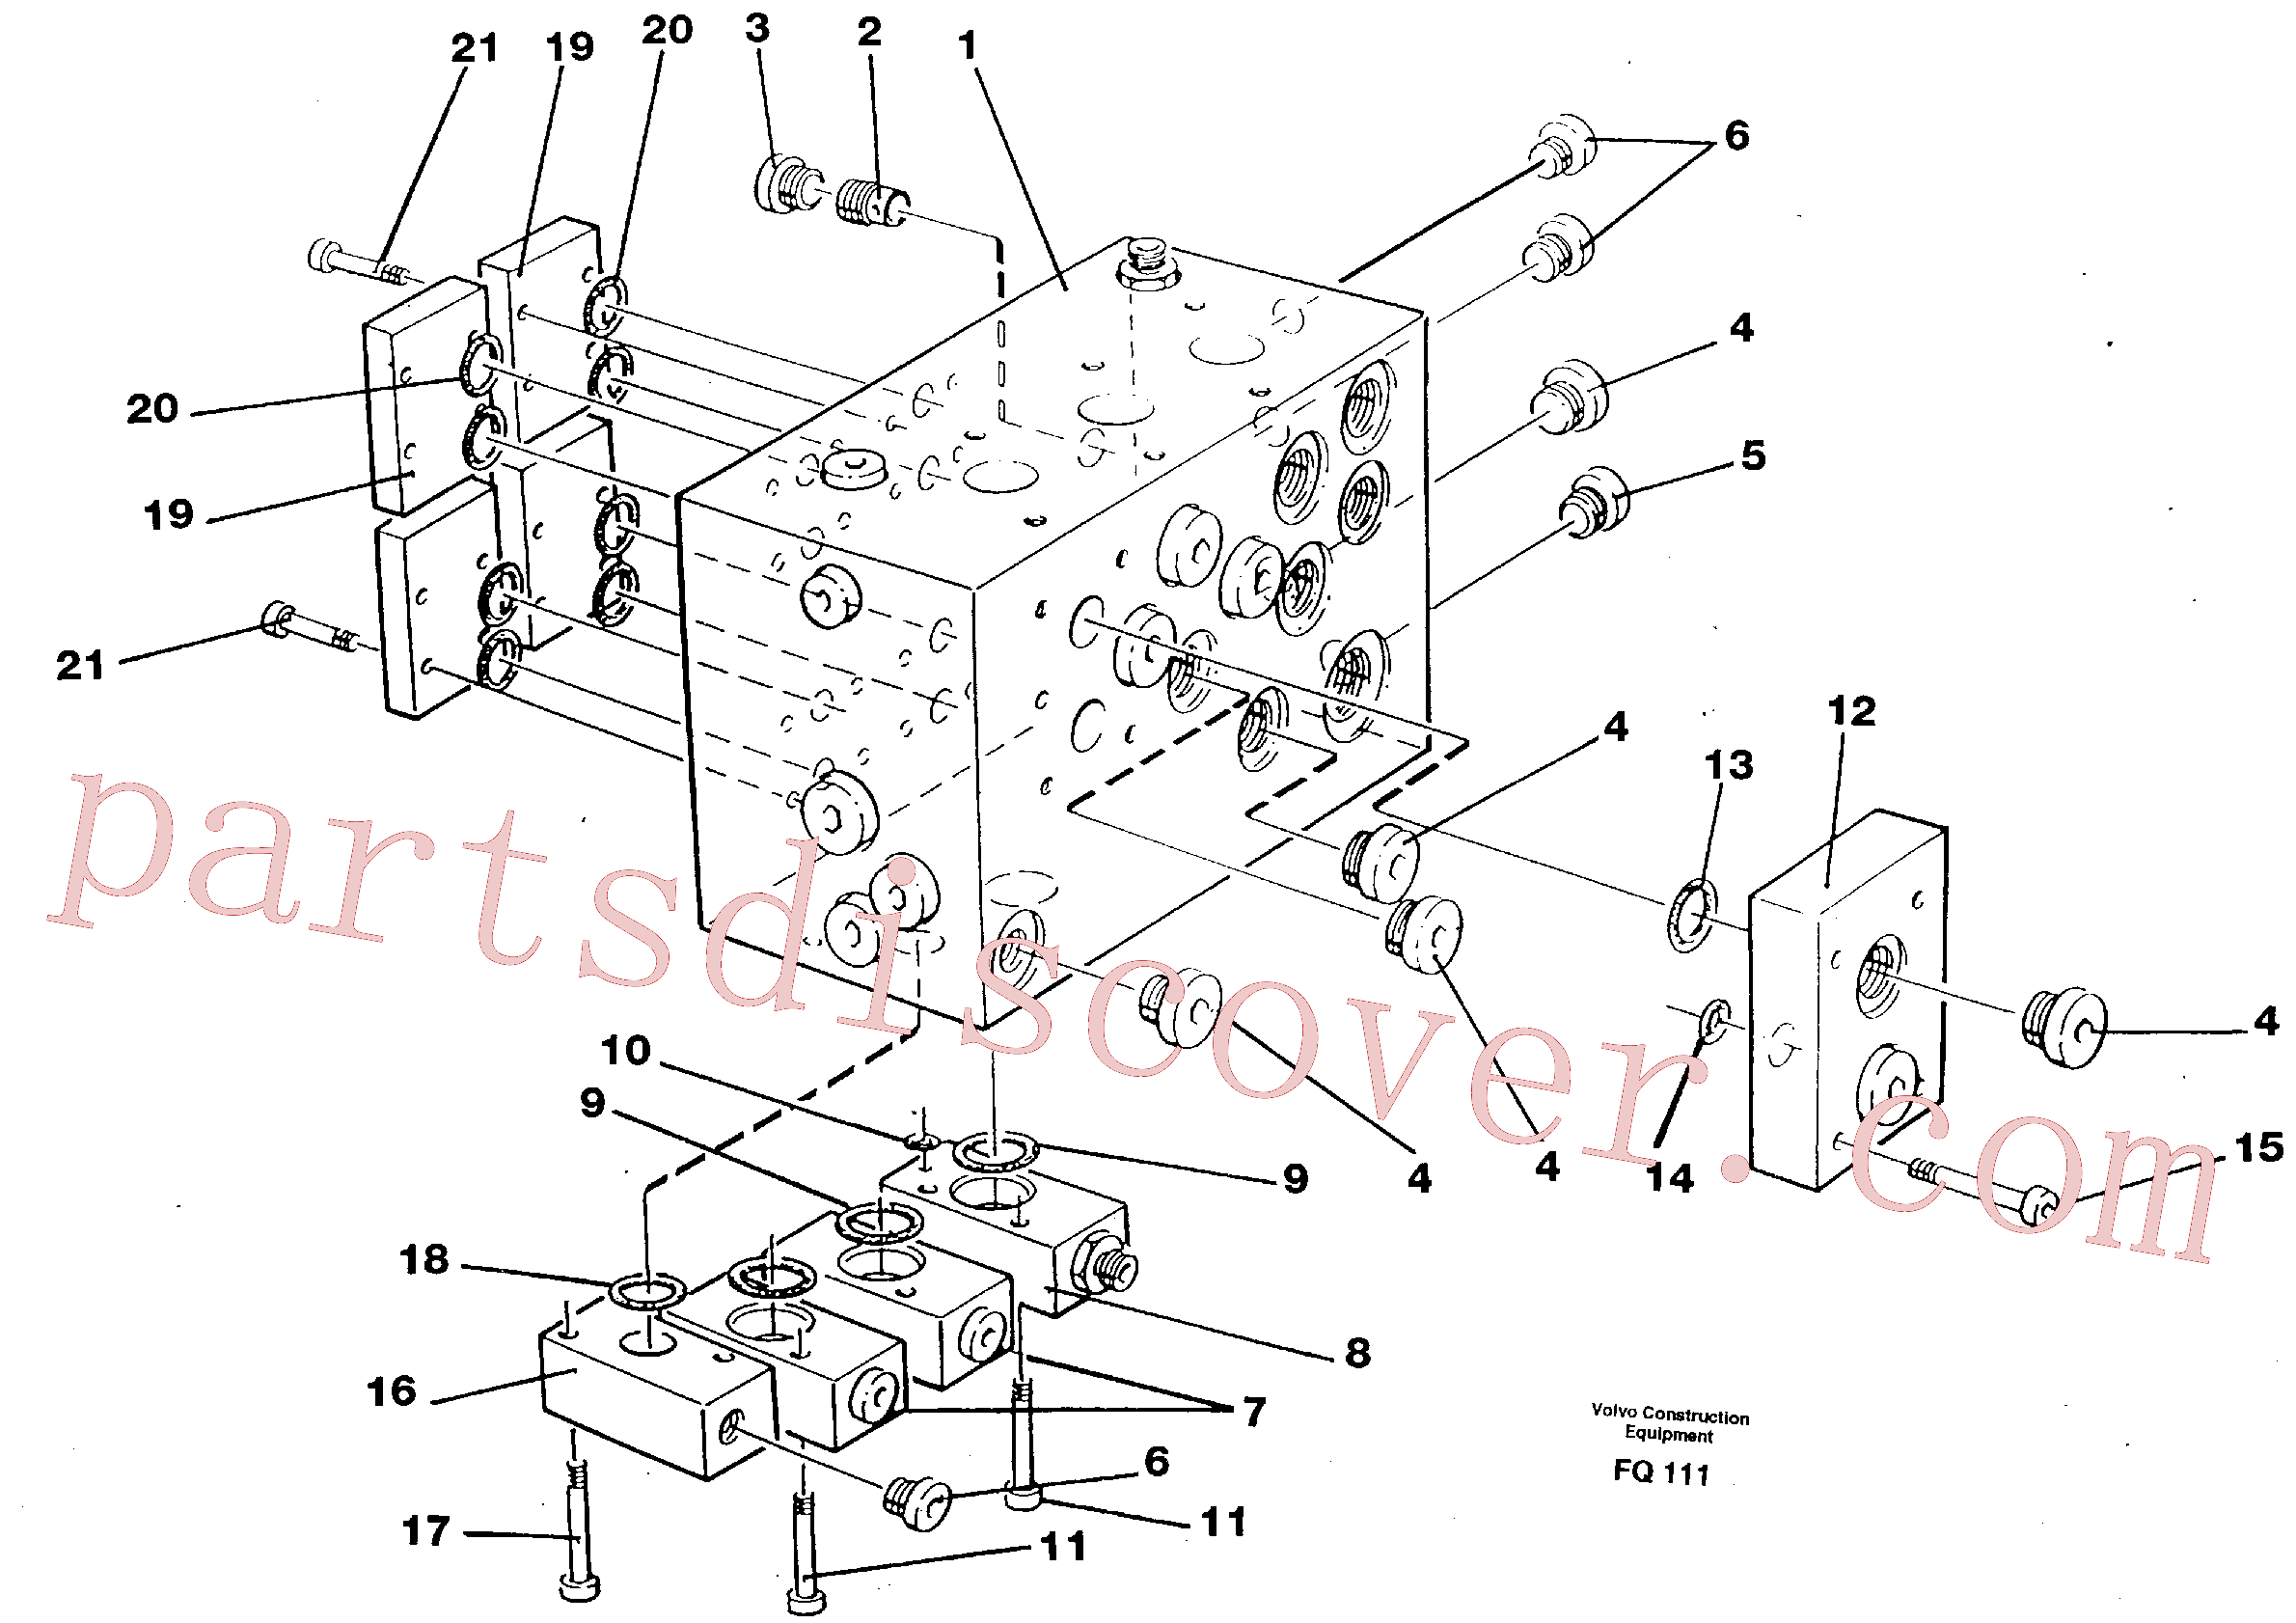 VOE14024363 for Volvo Slew valve assembly block(FQ111 assembly)